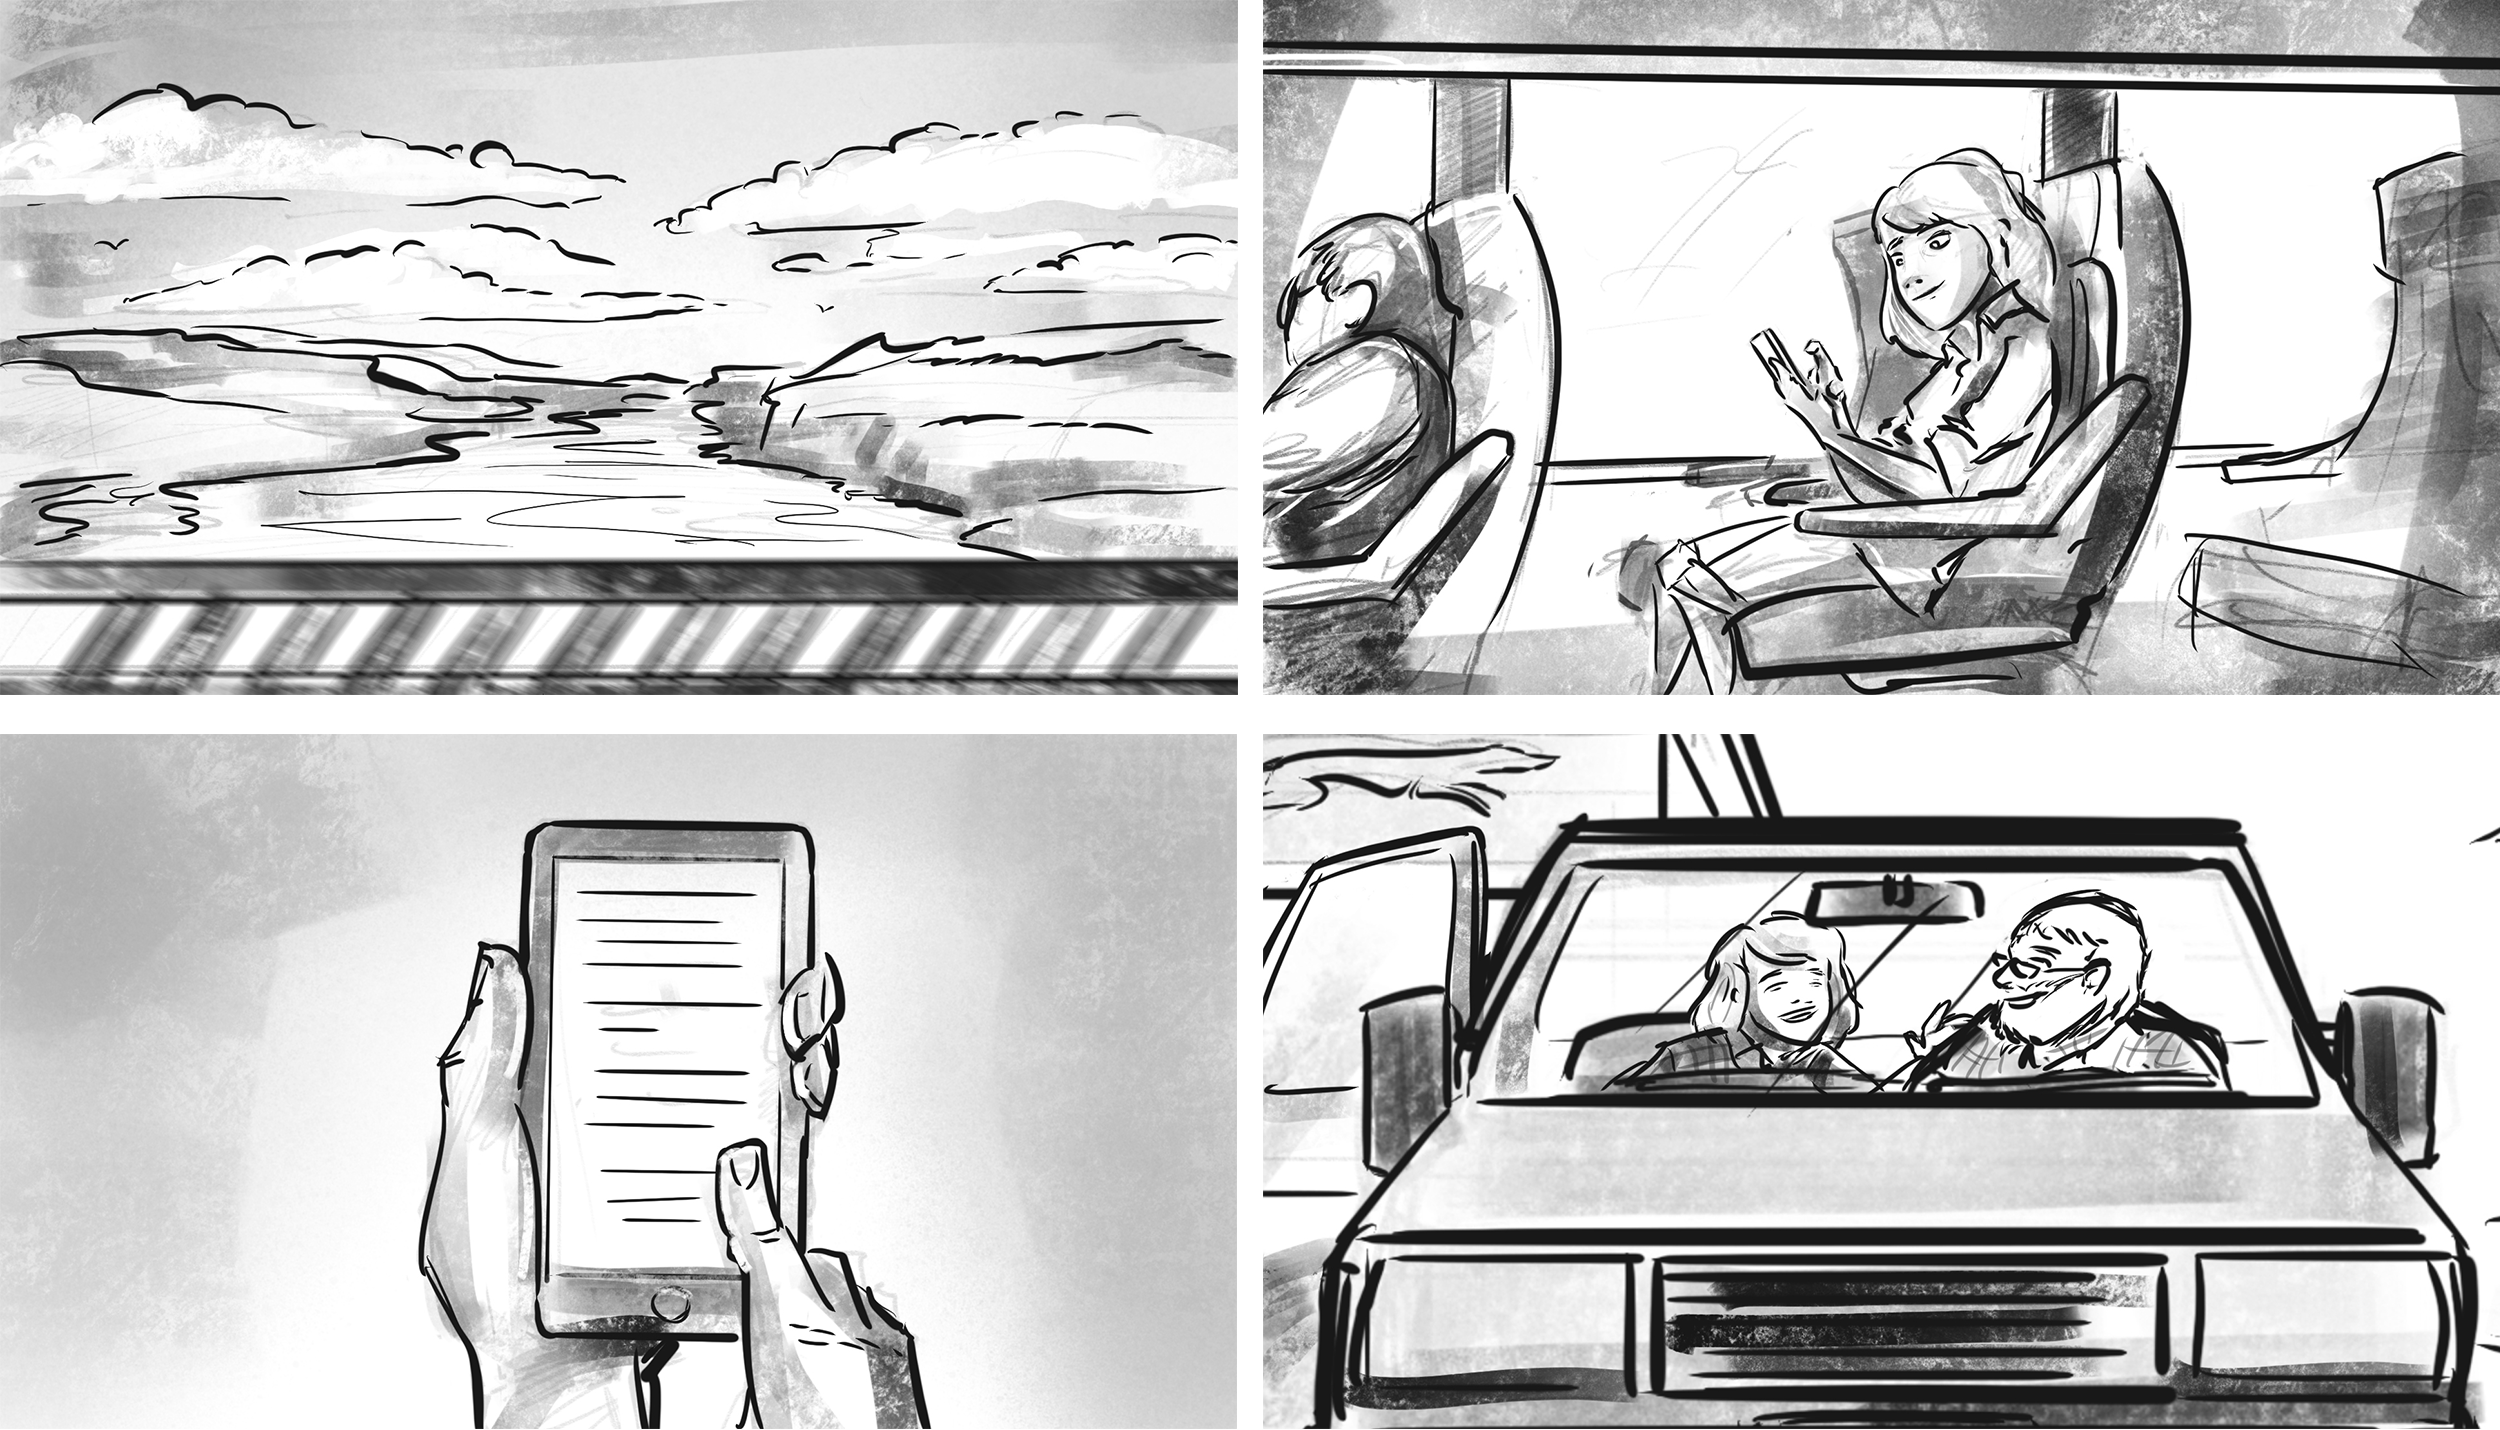 110217_HelloRaul_Storyboards_V0101.png